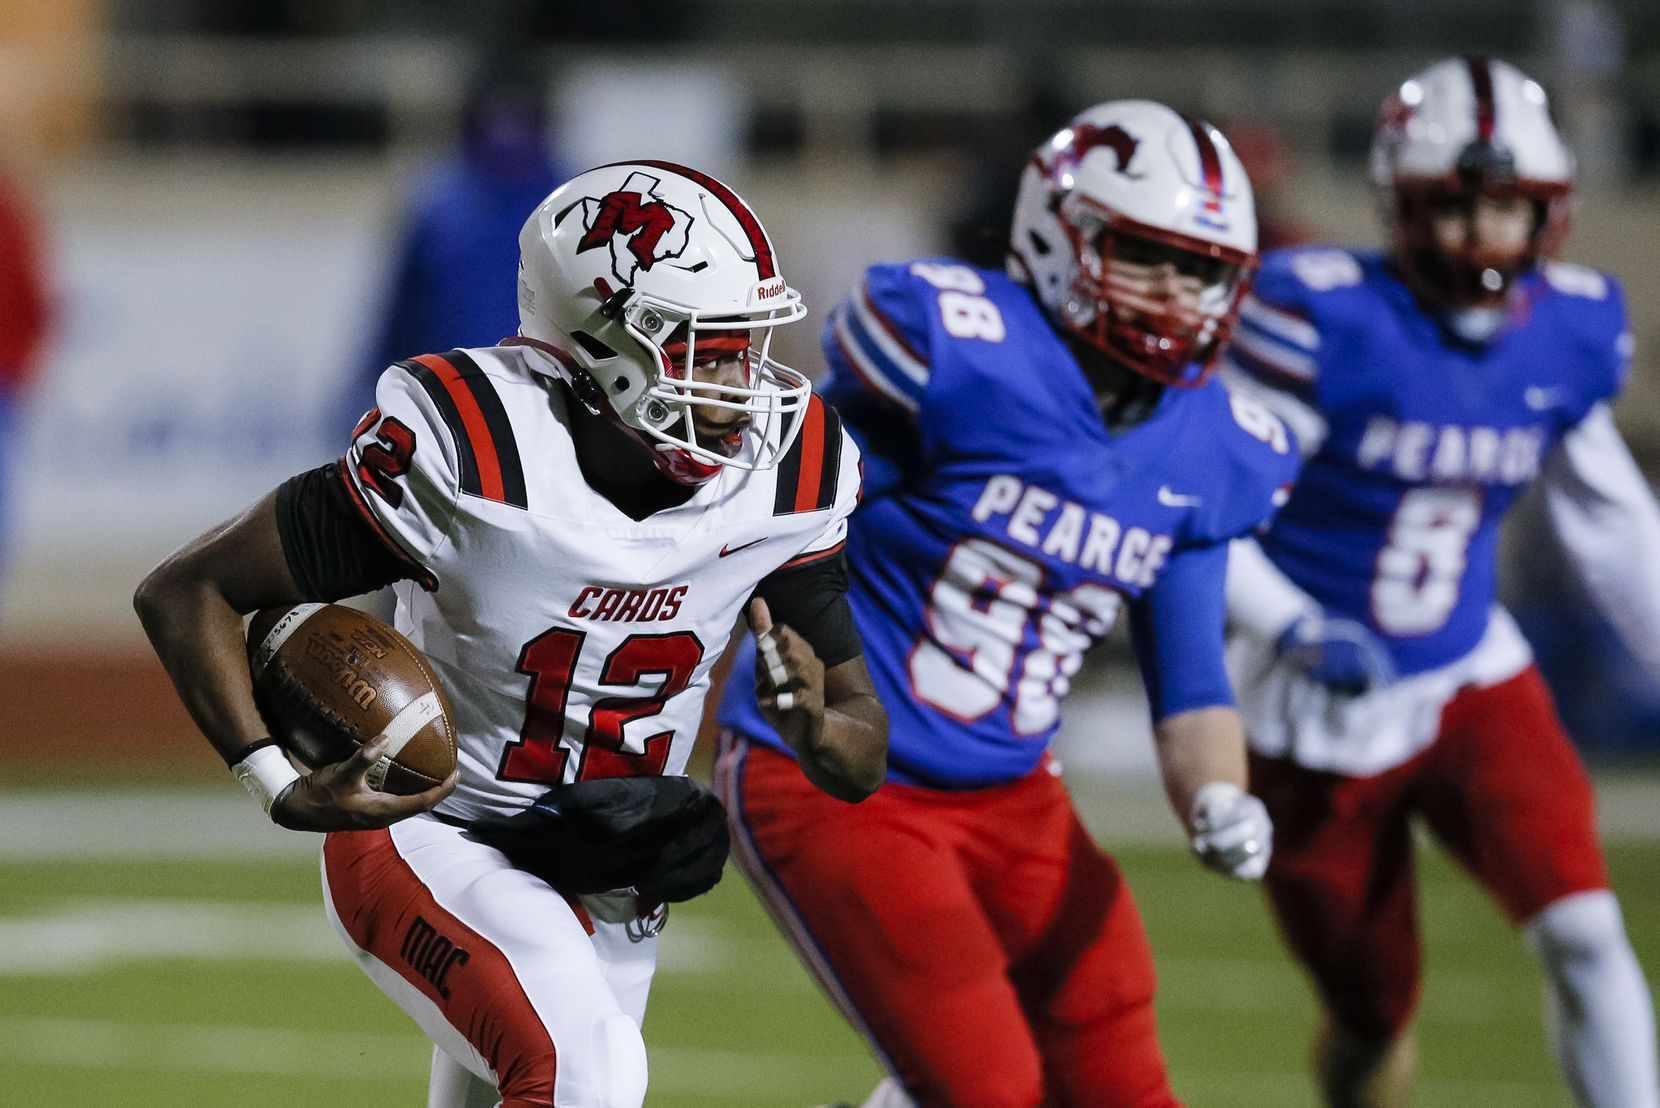 Irving MacArthur sophomore quarterback Kyale Flye (12) looks for room against the JJ Pearce defense during the first half of a high school playoff football game at Eagle-Mustang Stadium in Richardson, Thursday, December 3, 2020. (Brandon Wade/Special Contributor)